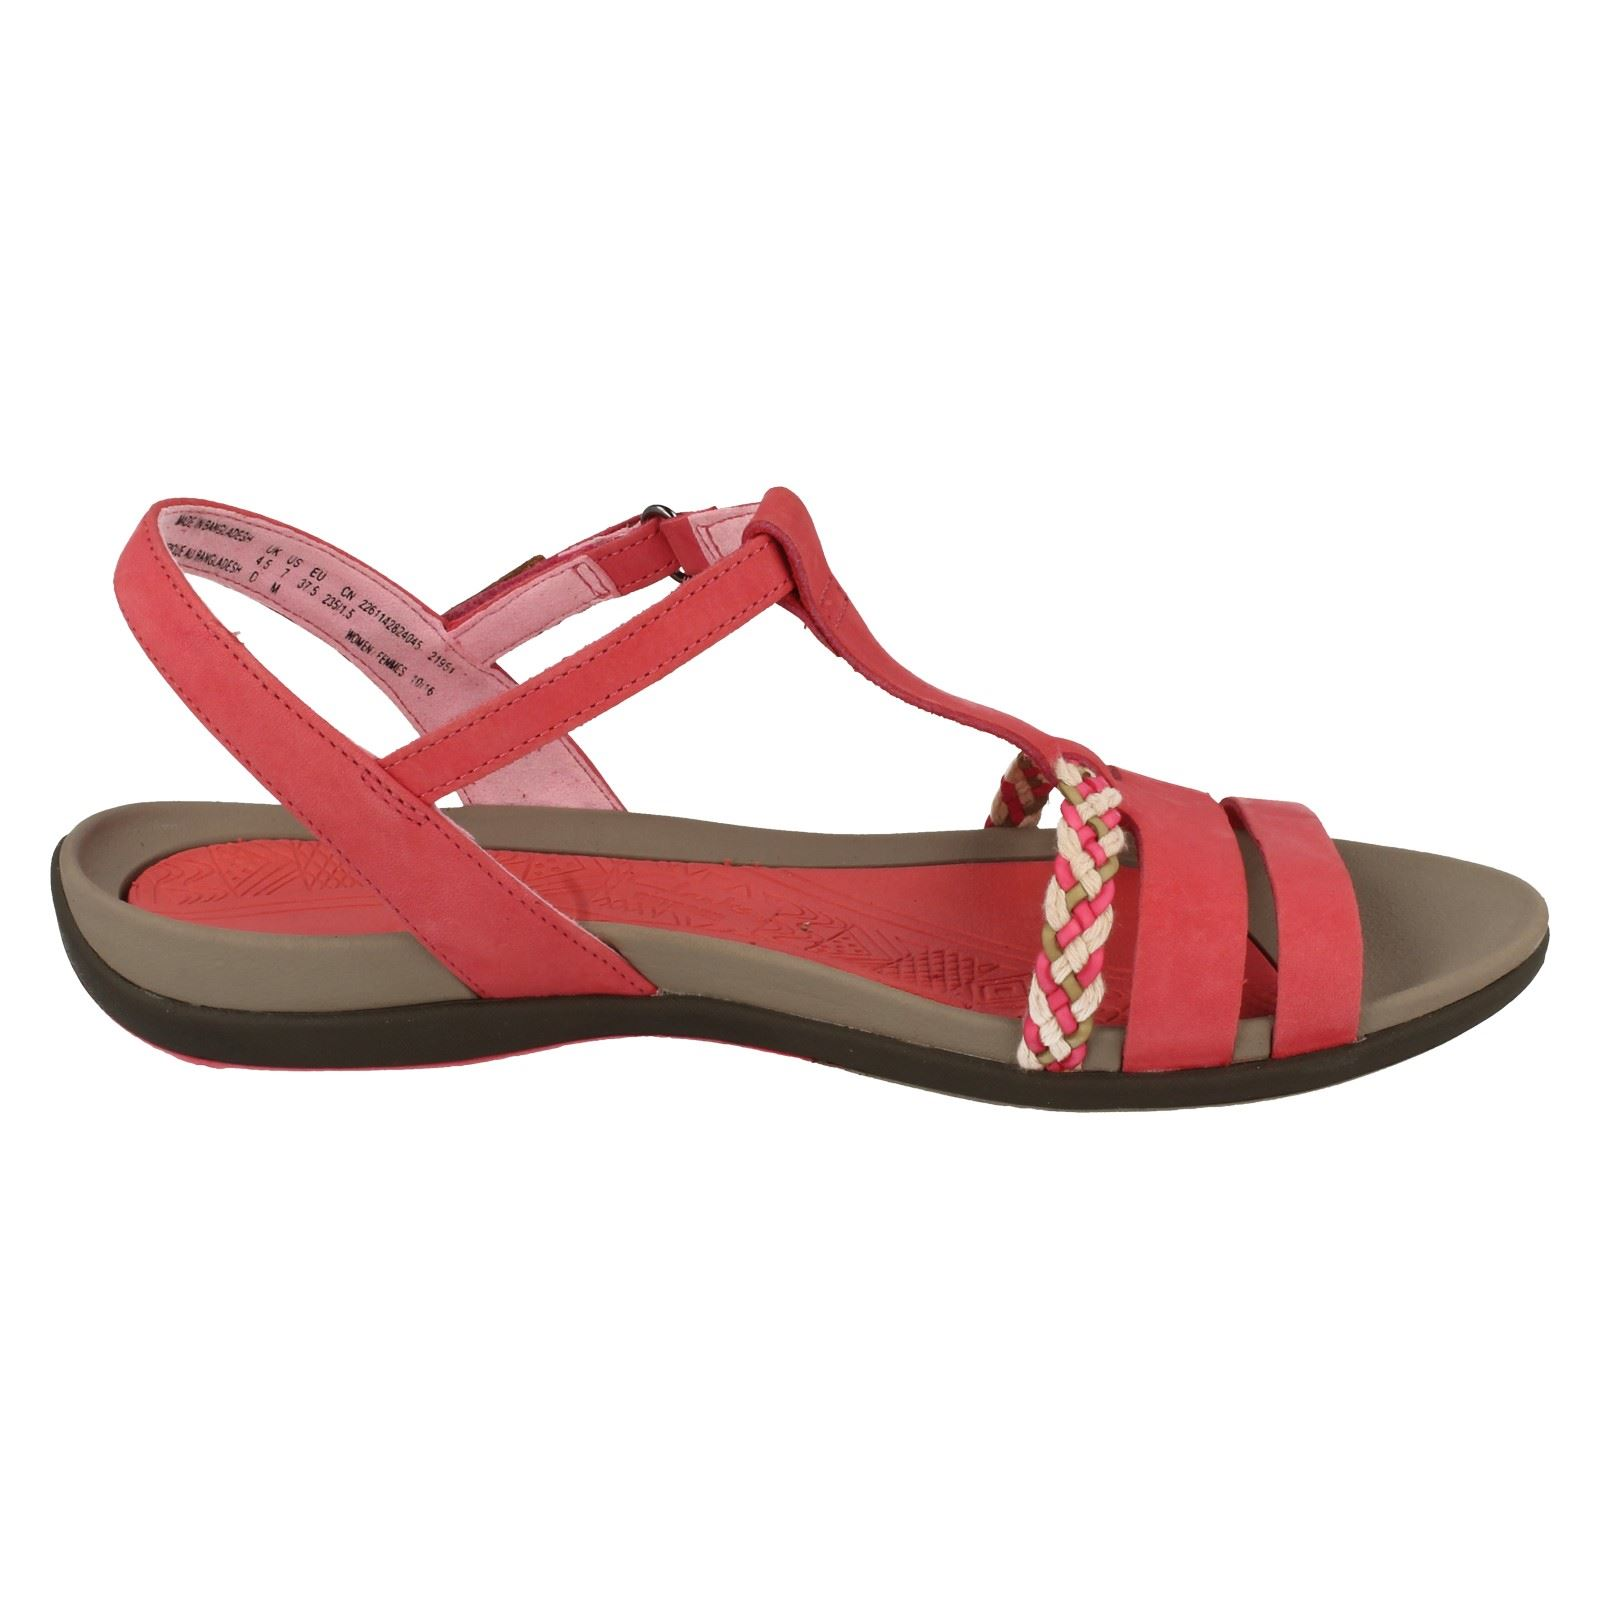 cff011e38f6 Ladies-Clarks-Casual-Summer-Sandals-Tealite-Grace thumbnail 4